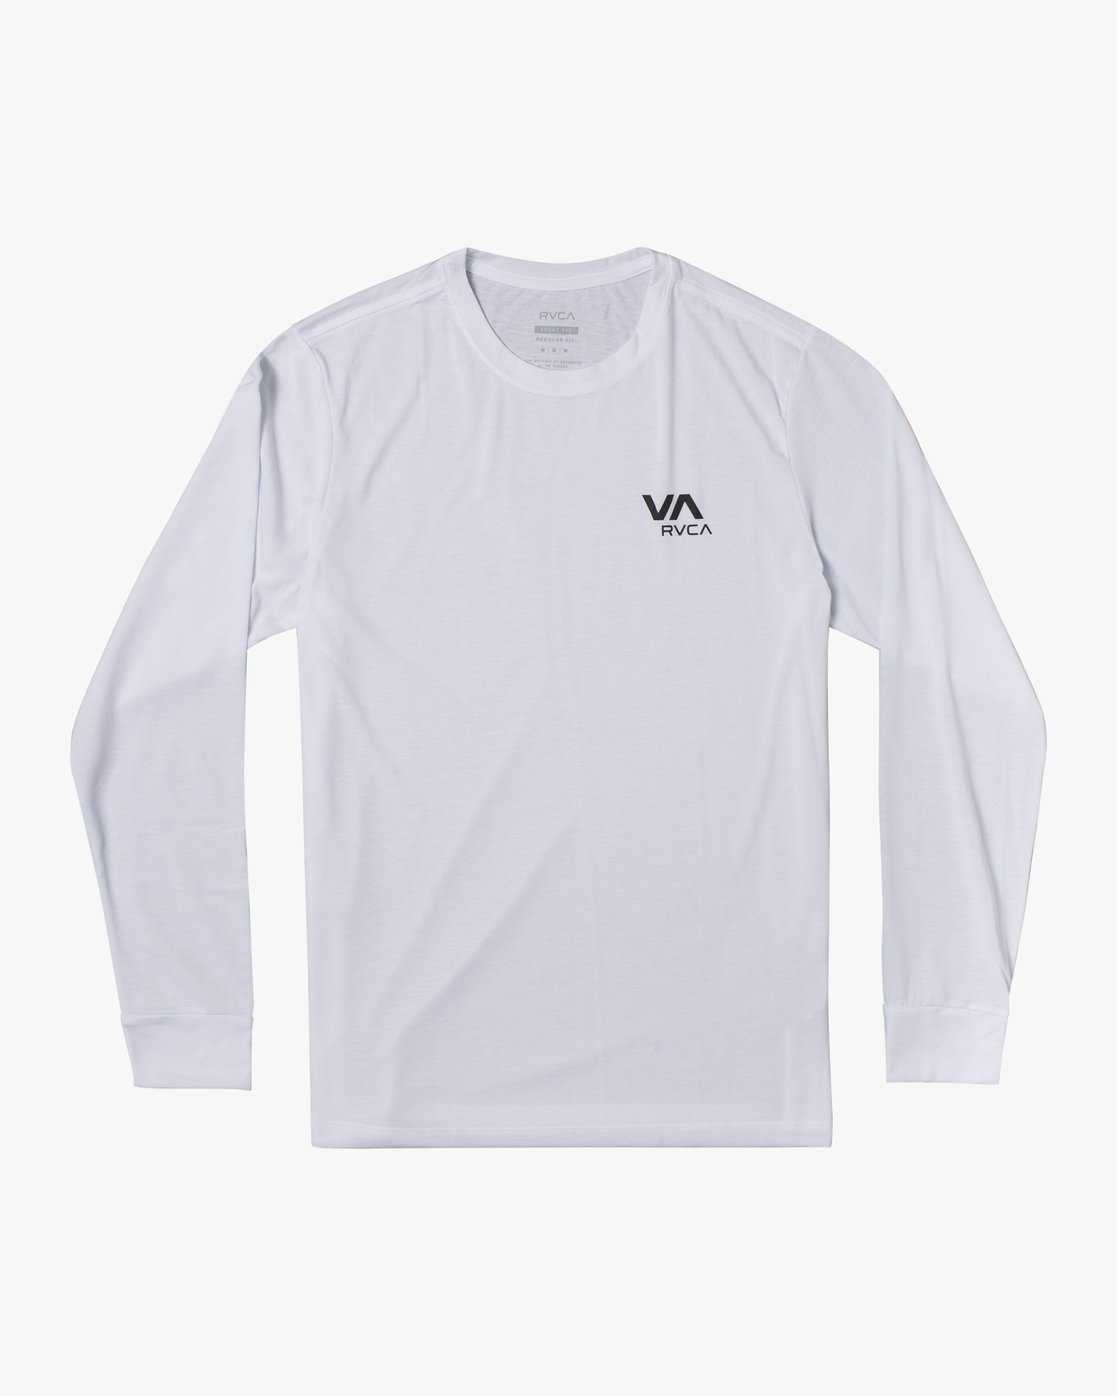 0 VA RVCA LONG SLEEVE TEE White V4533RVR RVCA